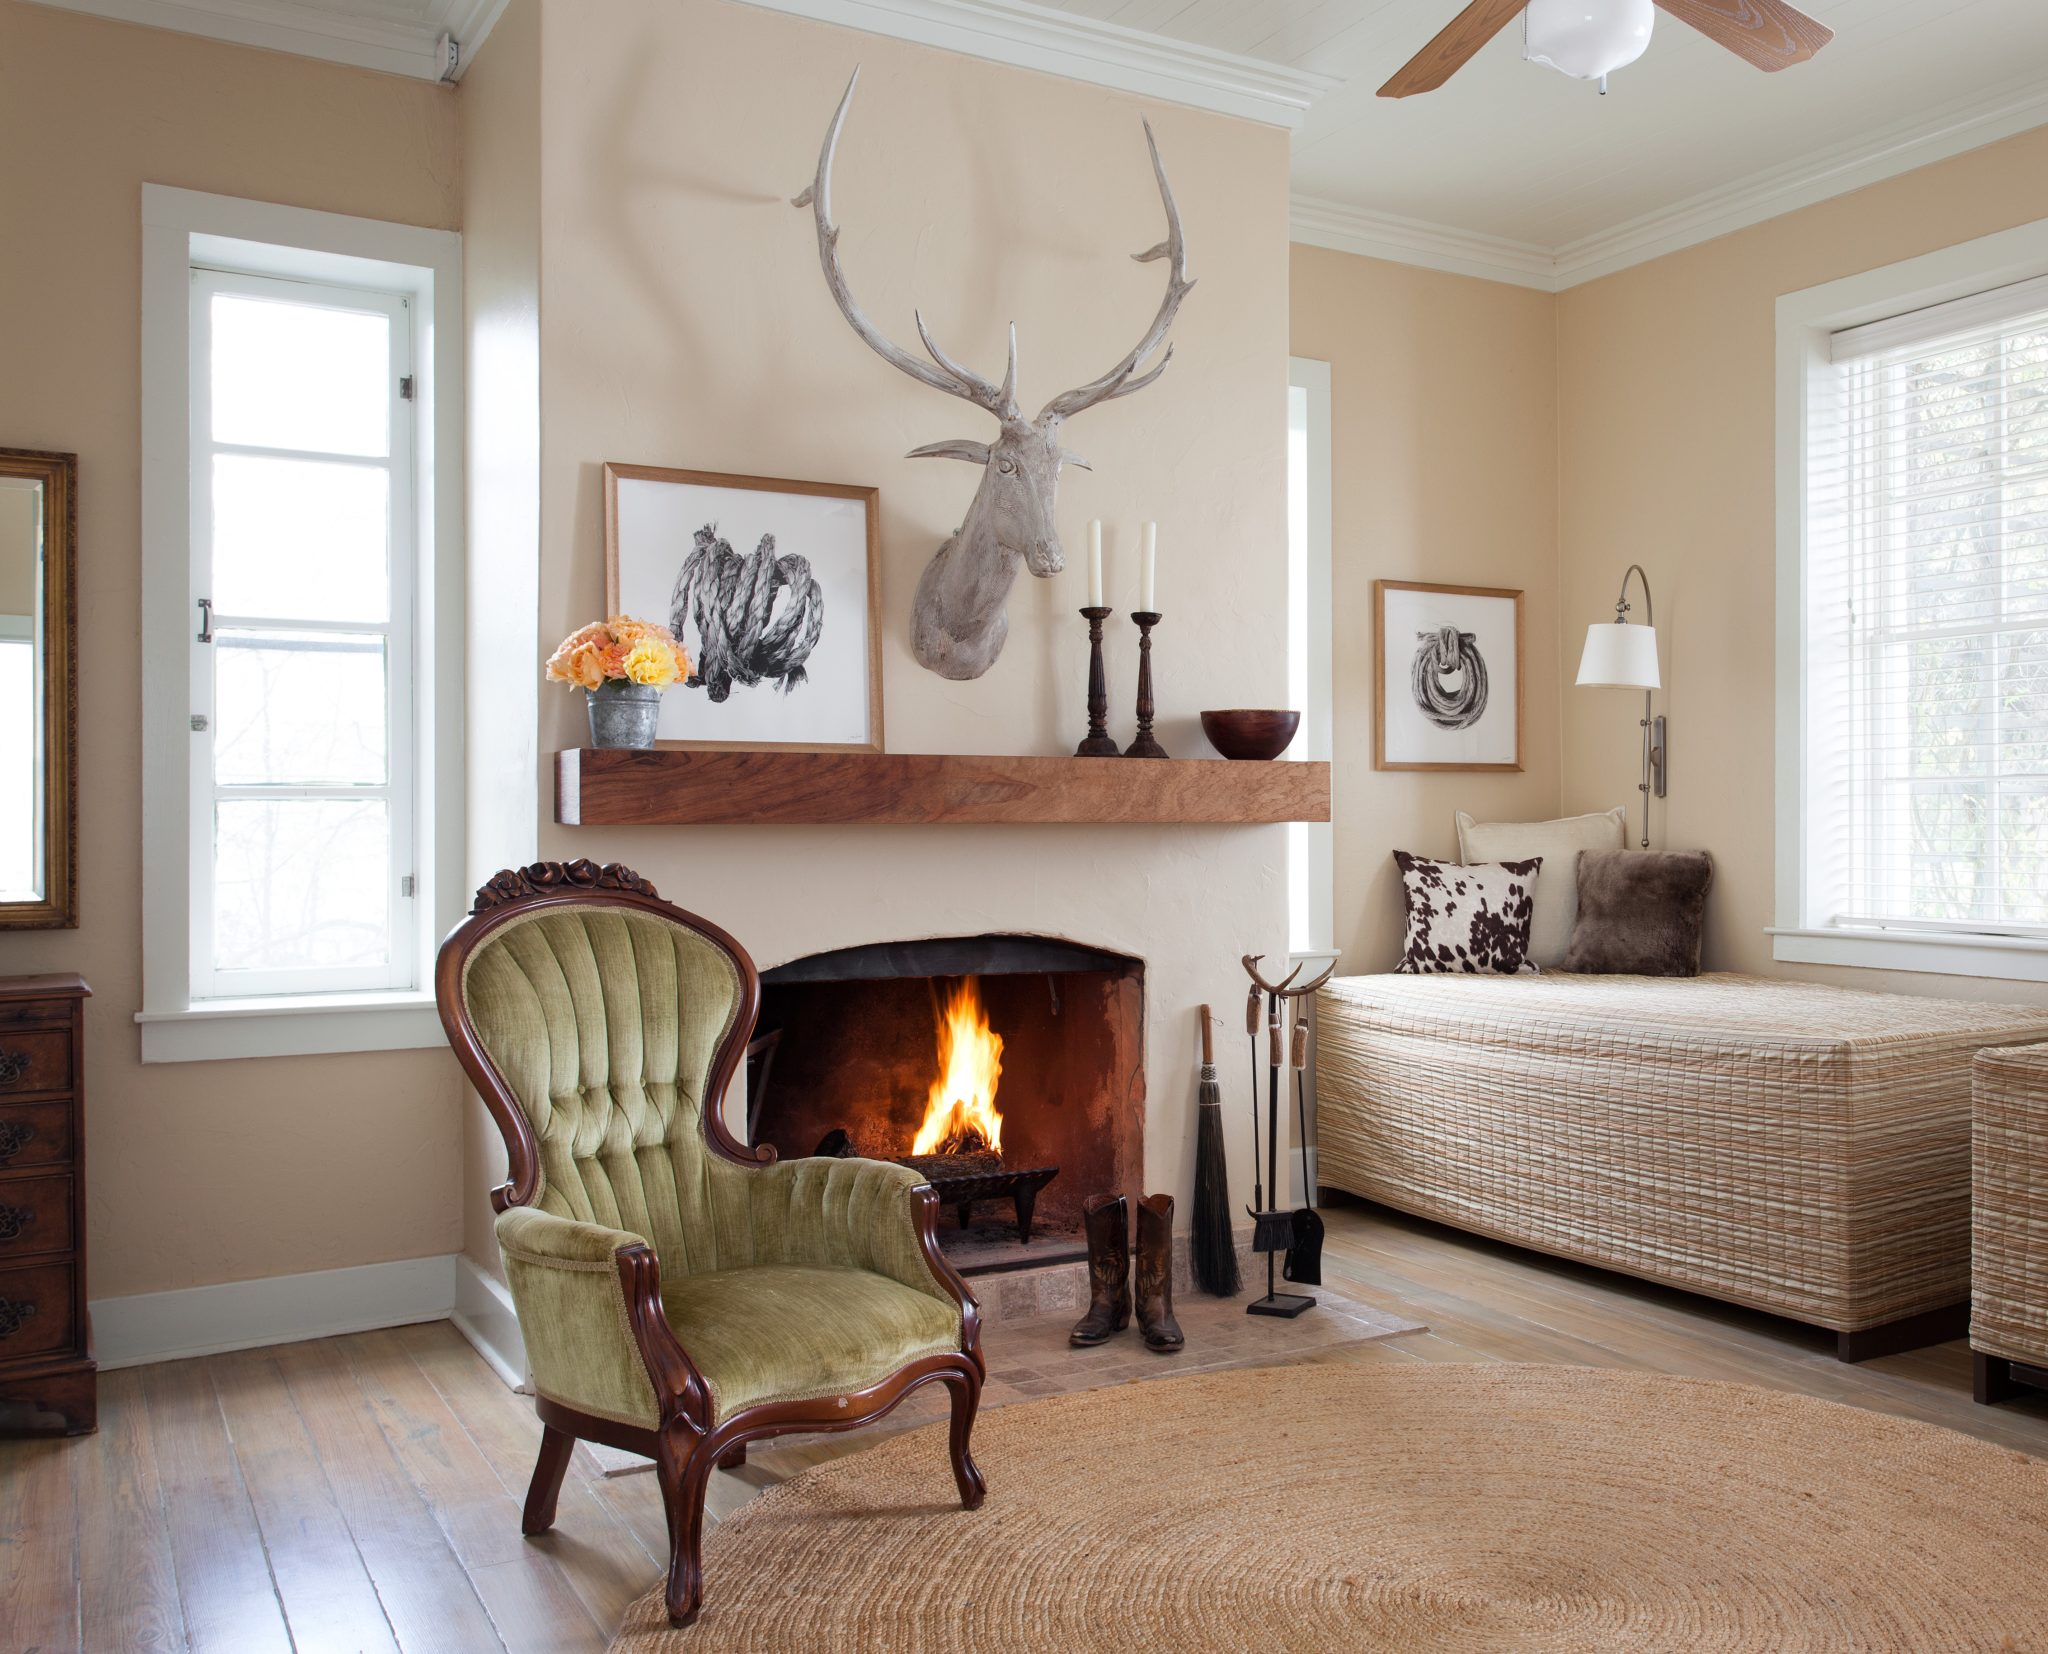 LBJ's Mother's Childhood Home - Guest Room with Fireplace by J. Fisher Interiors